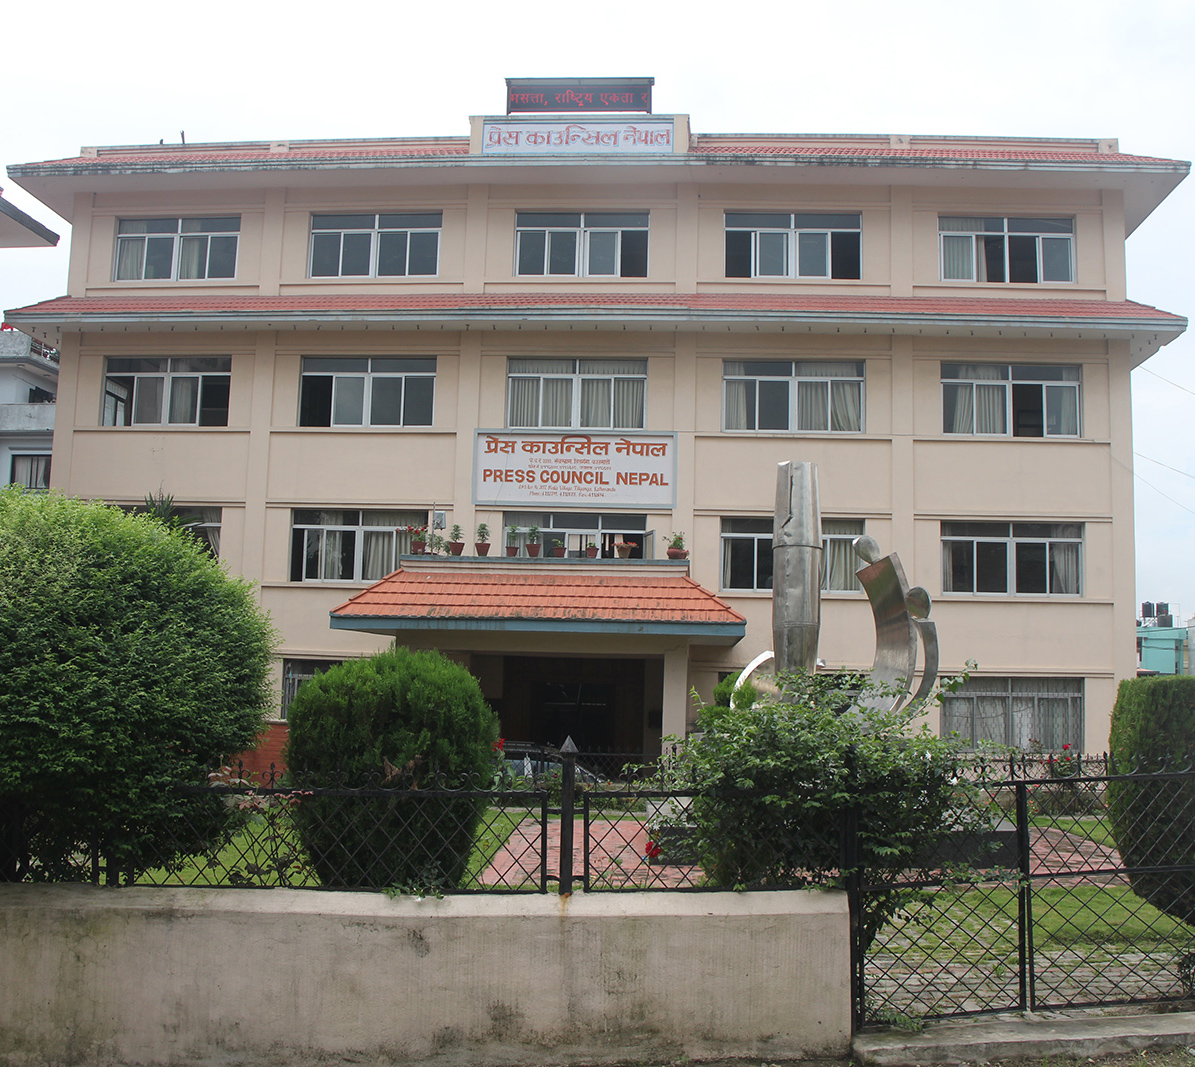 Office of Press Council Nepal